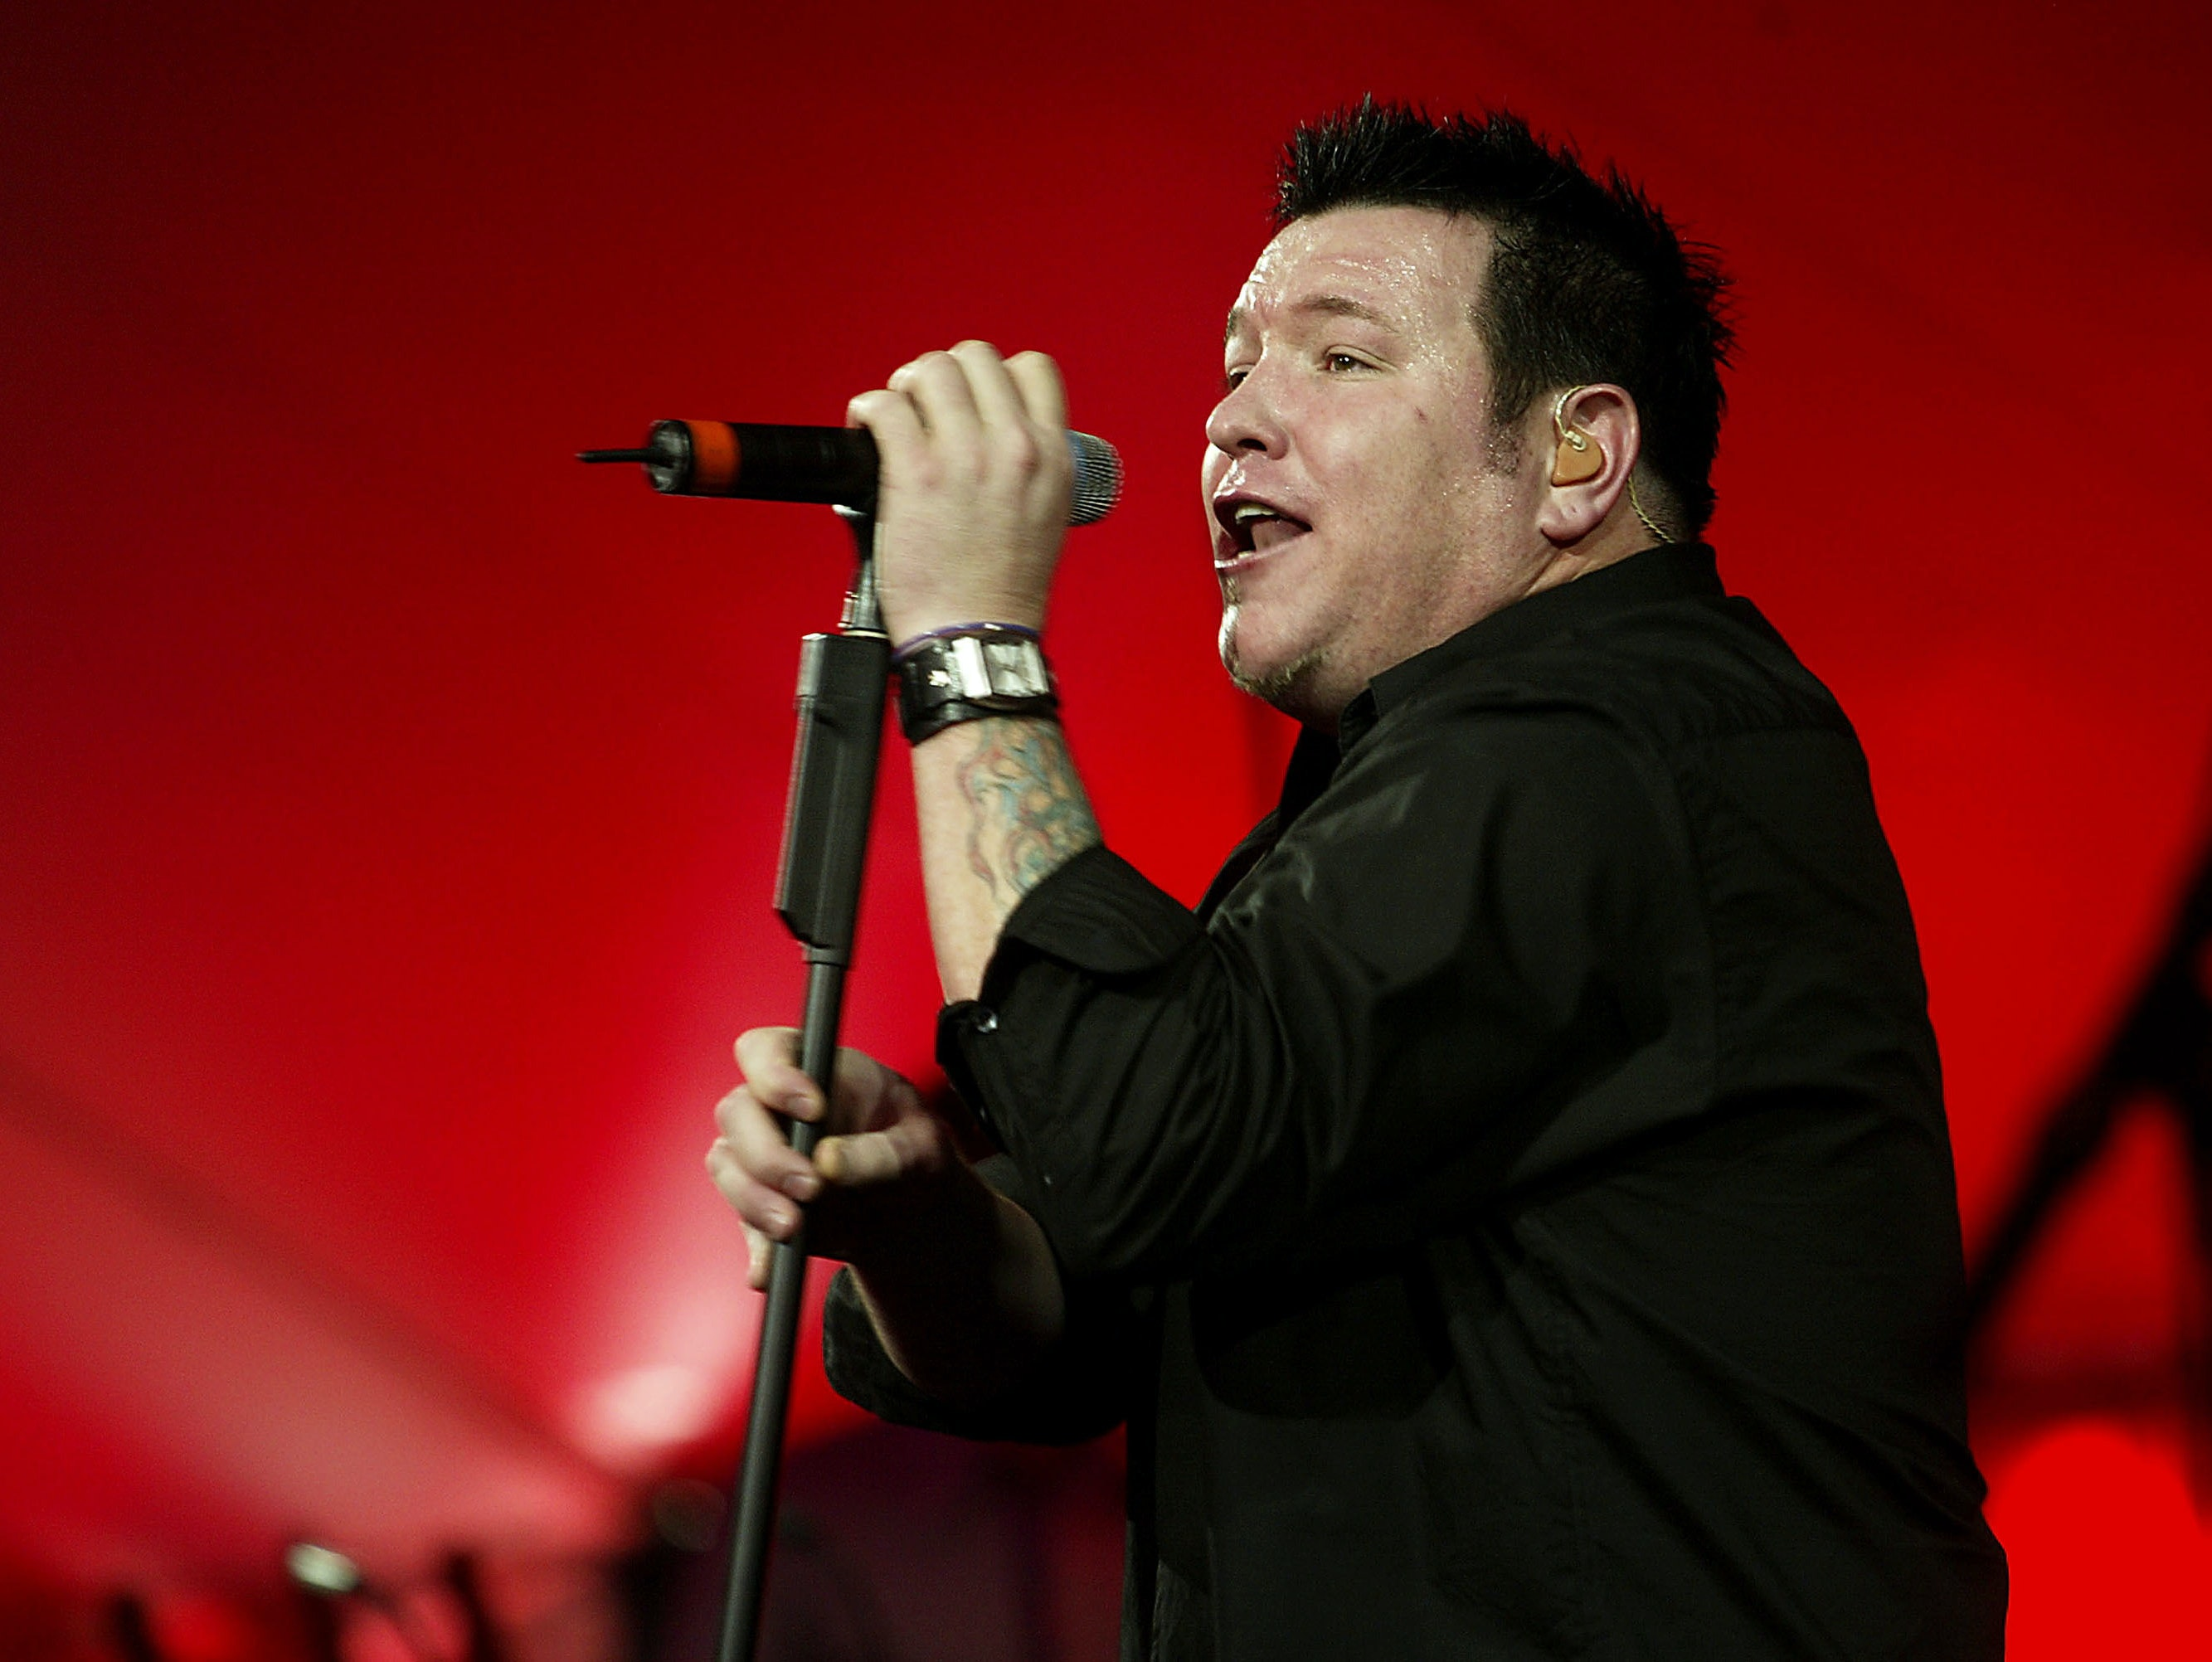 LOS ANGELES - NOVEMBER 8:  Smash Mouth, with singer Steve Harwell, performs at the after-party for 'Dr. Seuss' Cat In The Hat' at the Universal Studios Cinema on November 8, 2003 in Los Angeles, California. (Photo by Kevin Winter/Getty Images)